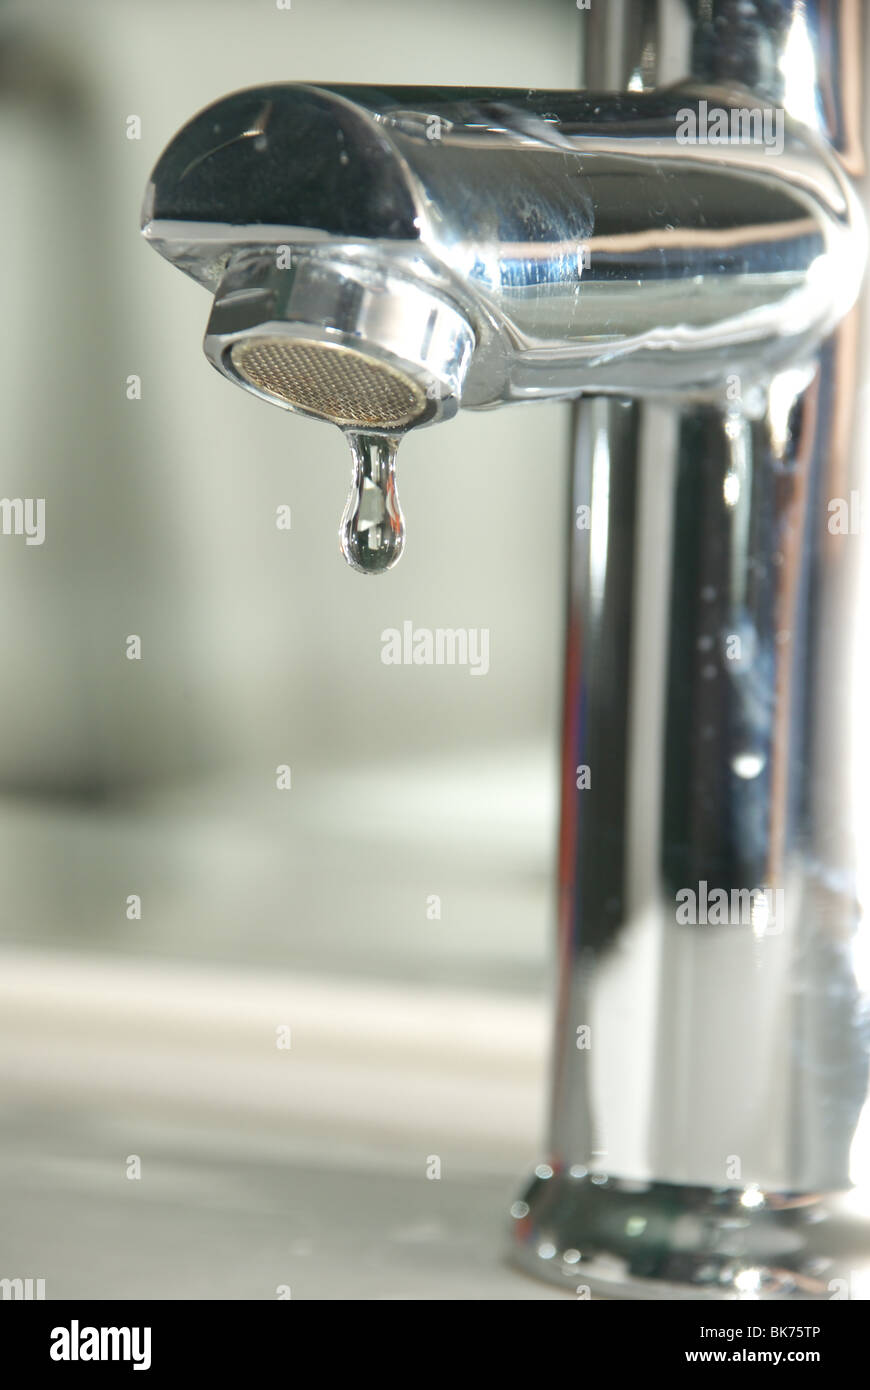 leaking faucet Stock Photo, Royalty Free Image: 29047110 - Alamy